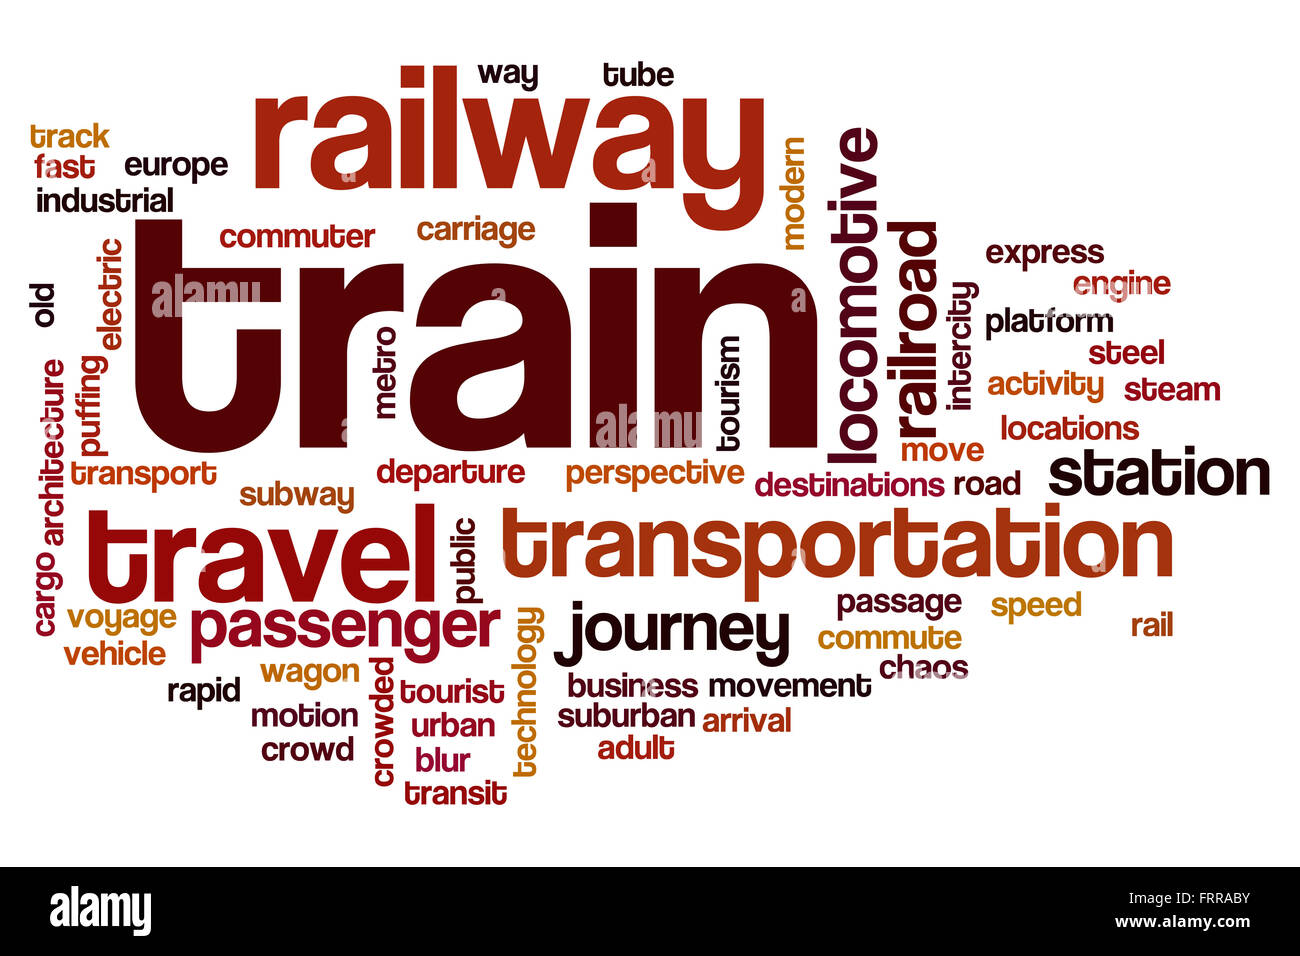 Train word cloud concept - Stock Image